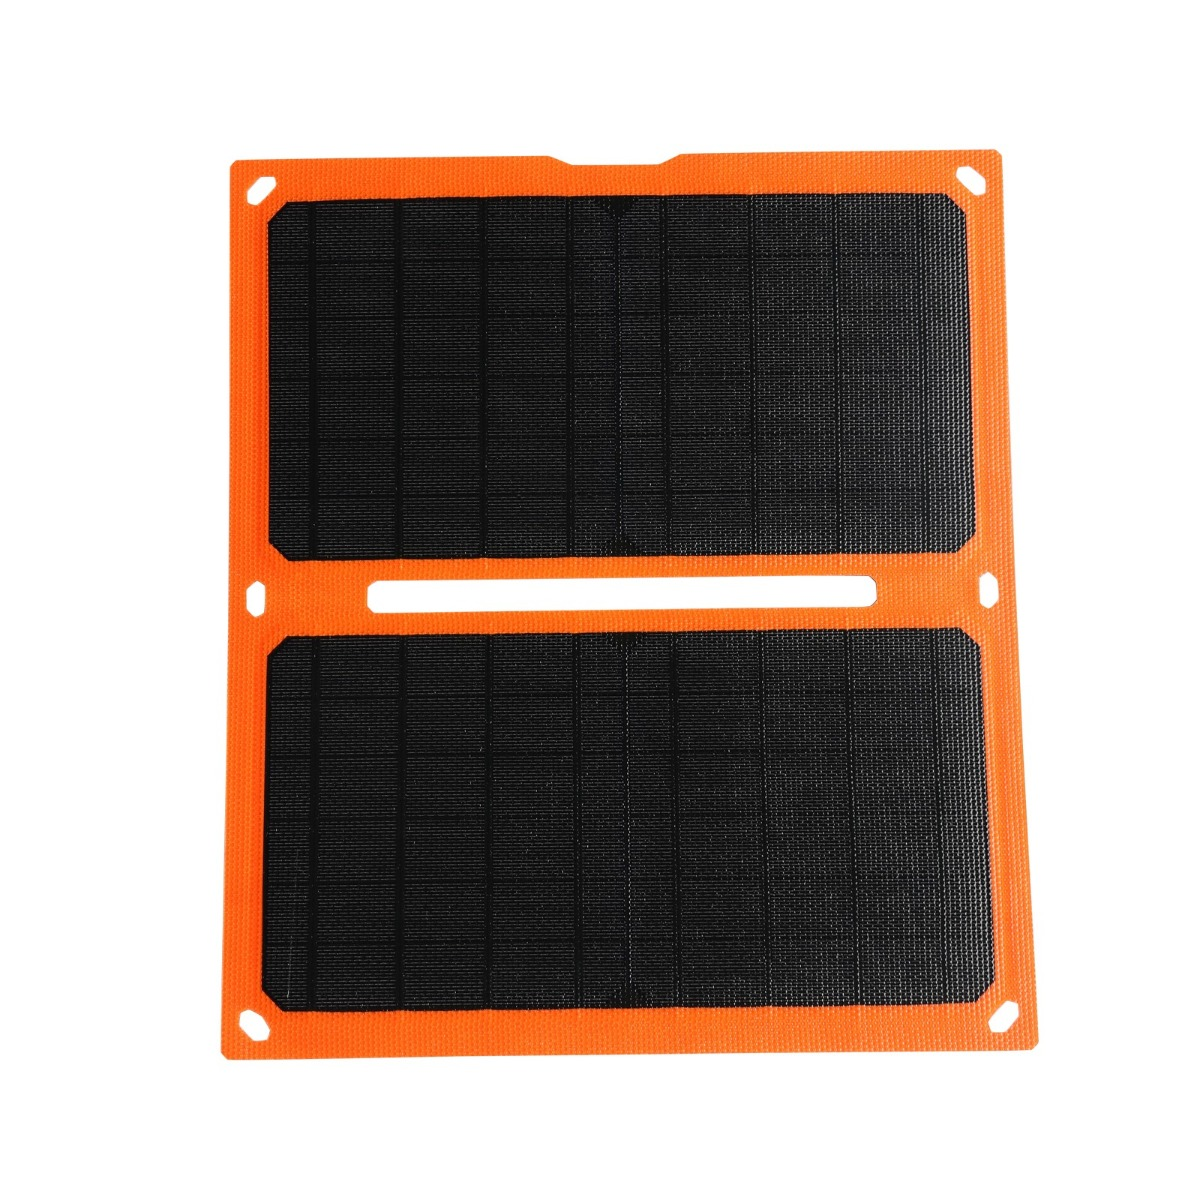 20W Smart flexible Solar Panel Power Bank ETFE Foldable USB Phone Ipad Camera